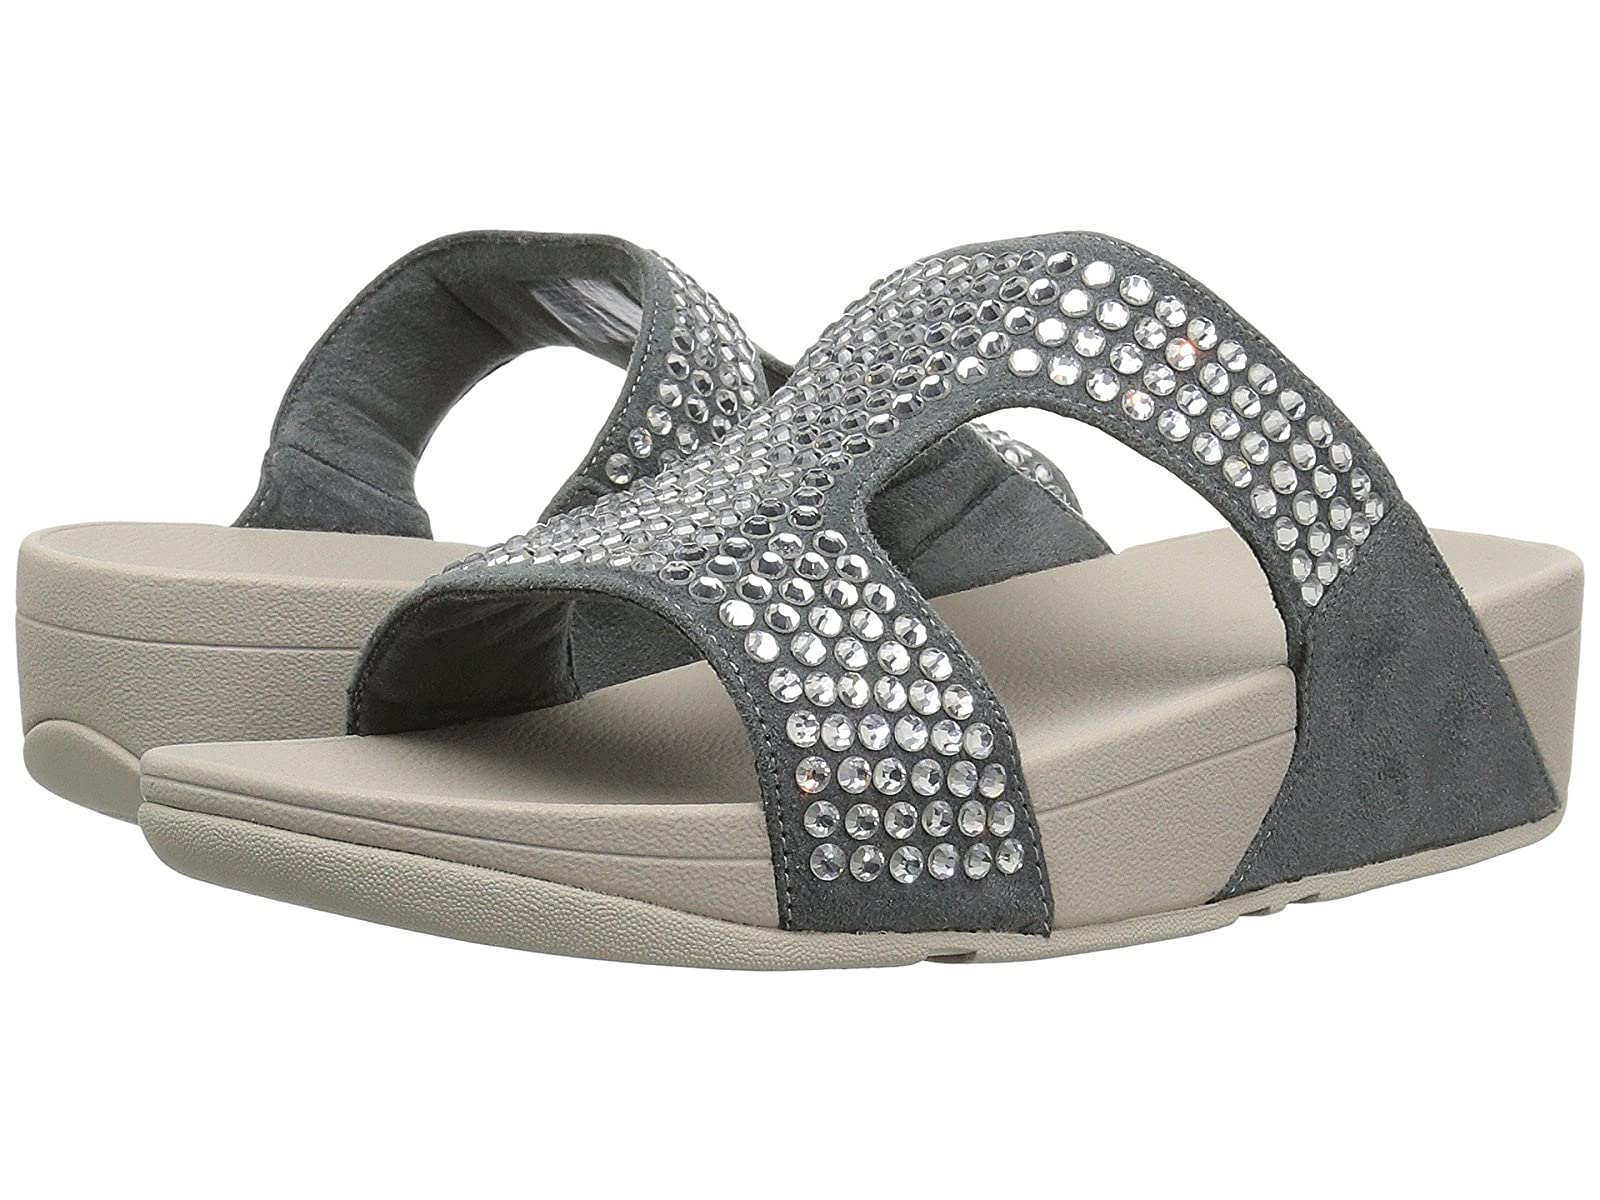 FitFlop Glitzie SlideCheap and distinctive eye-catching shoes